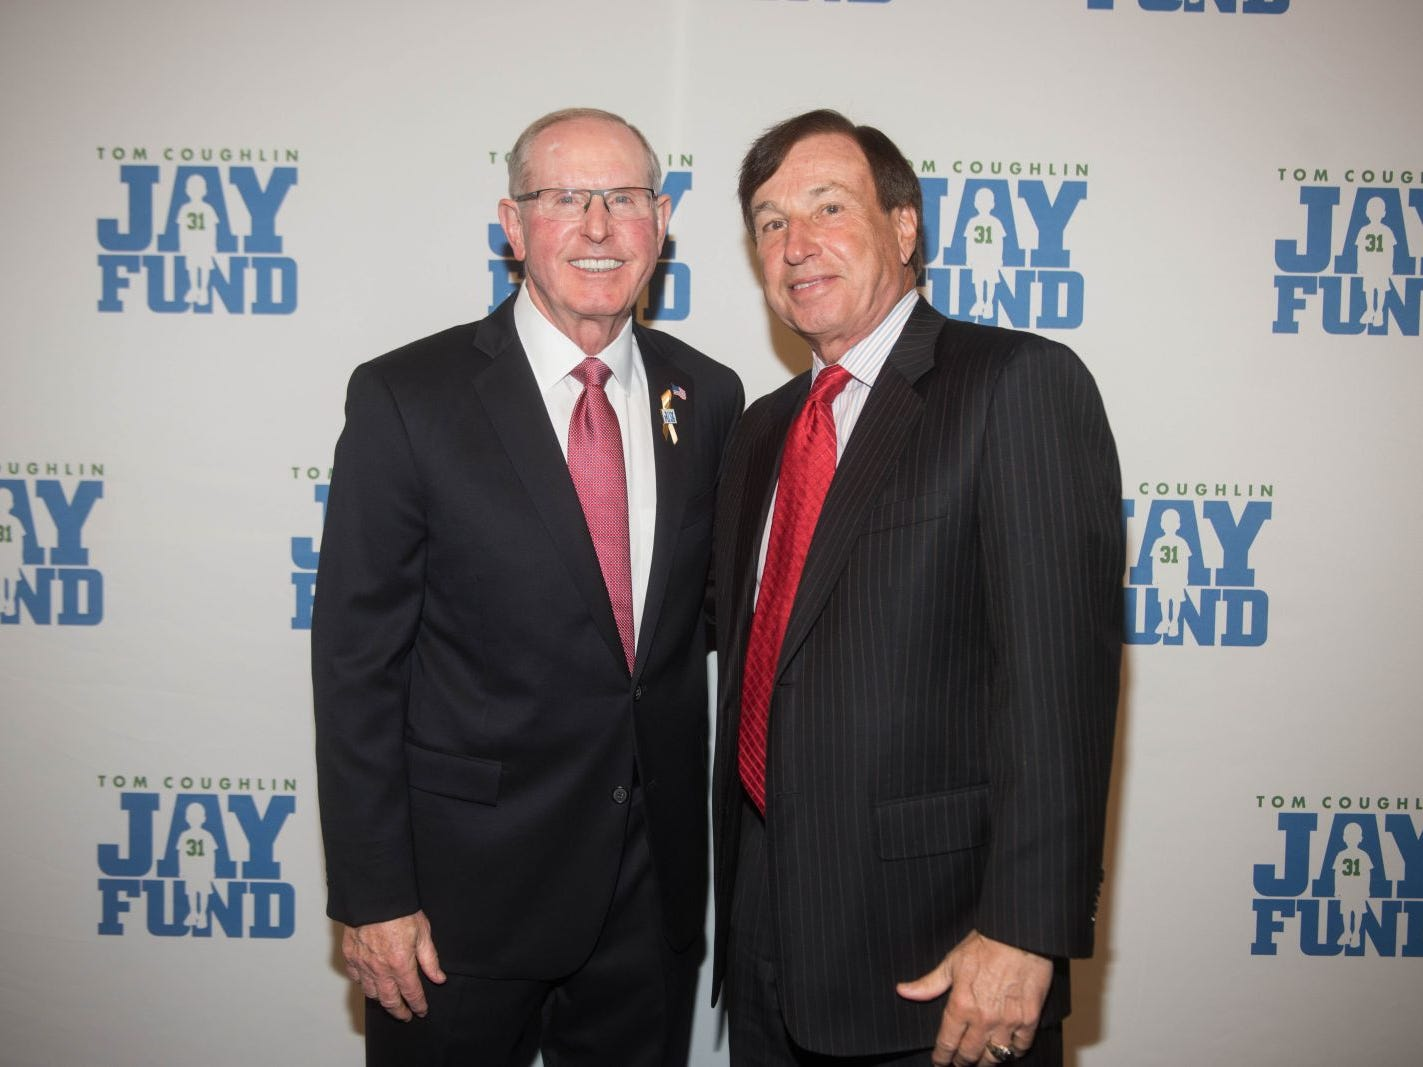 Tom Coughlin and Frank Fusaro. The 14th annual Jay Fund Champions for Children Gala was held at Cipriani 42nd Street. 09/21/2018